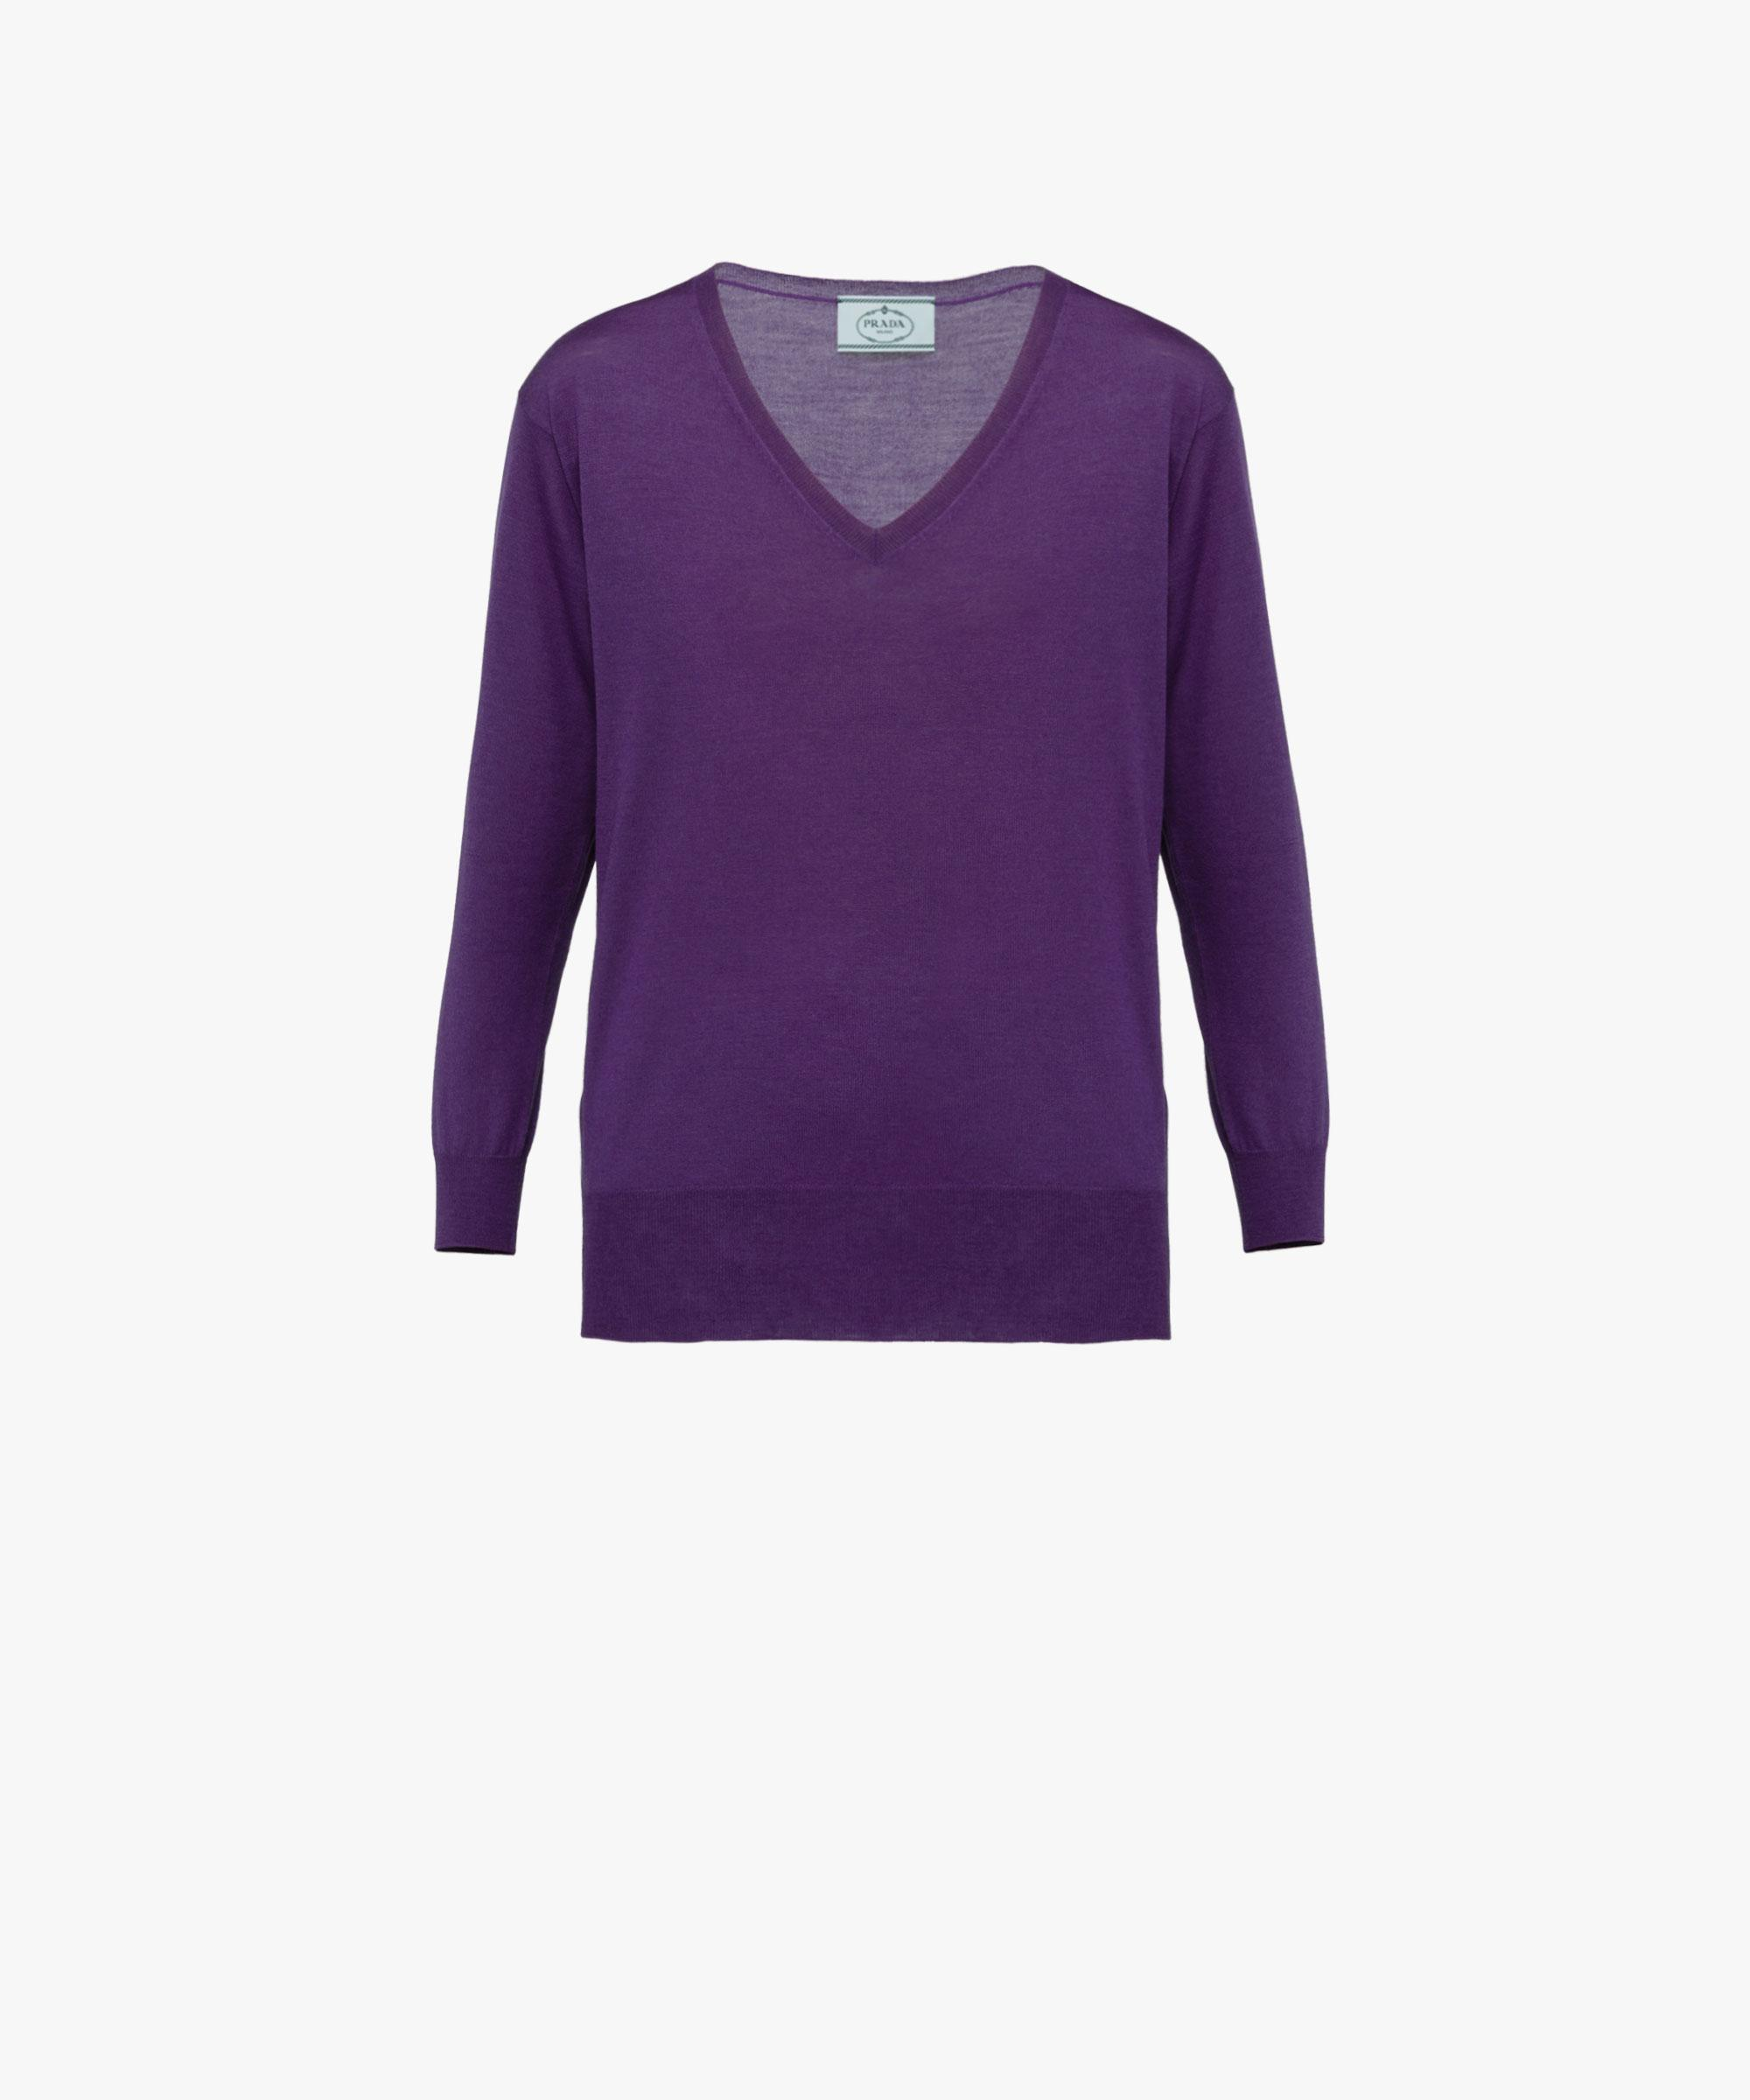 Prada Merino Wool Sweater in Purple | Lyst